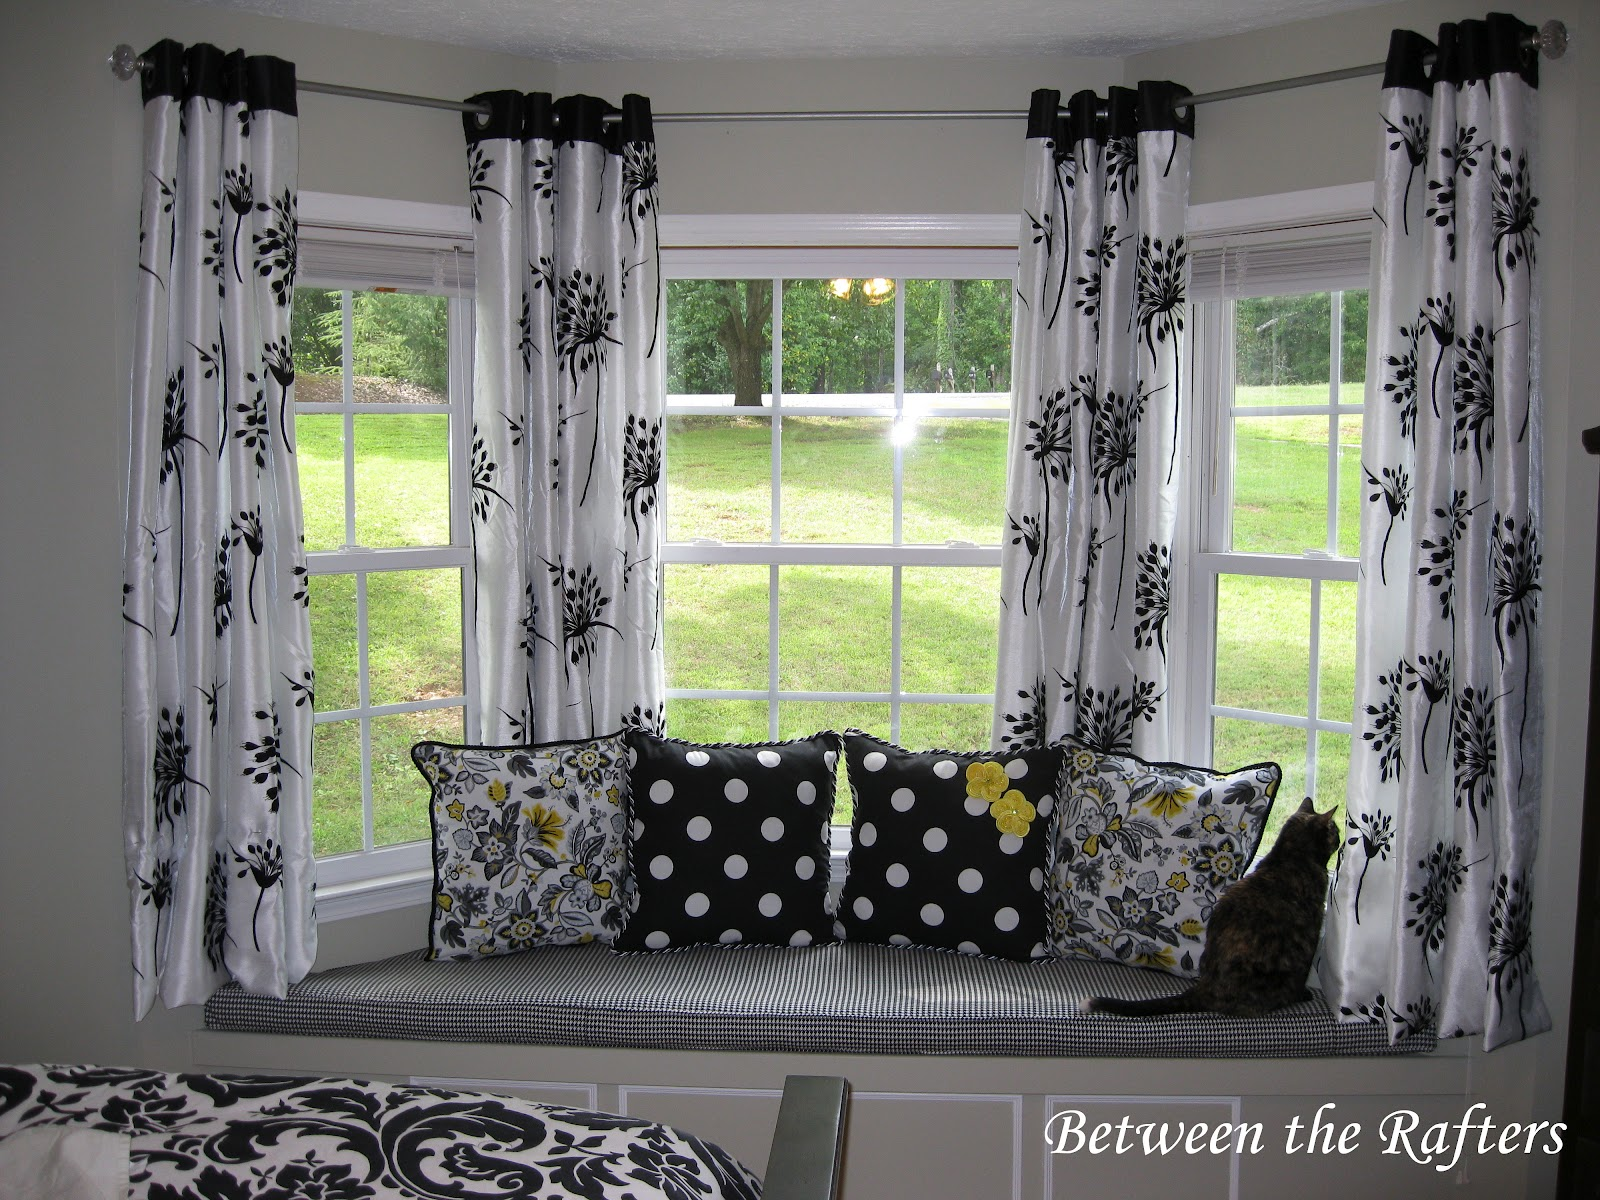 How To Put Curtains In A Bay Window How to Design a Bay Window